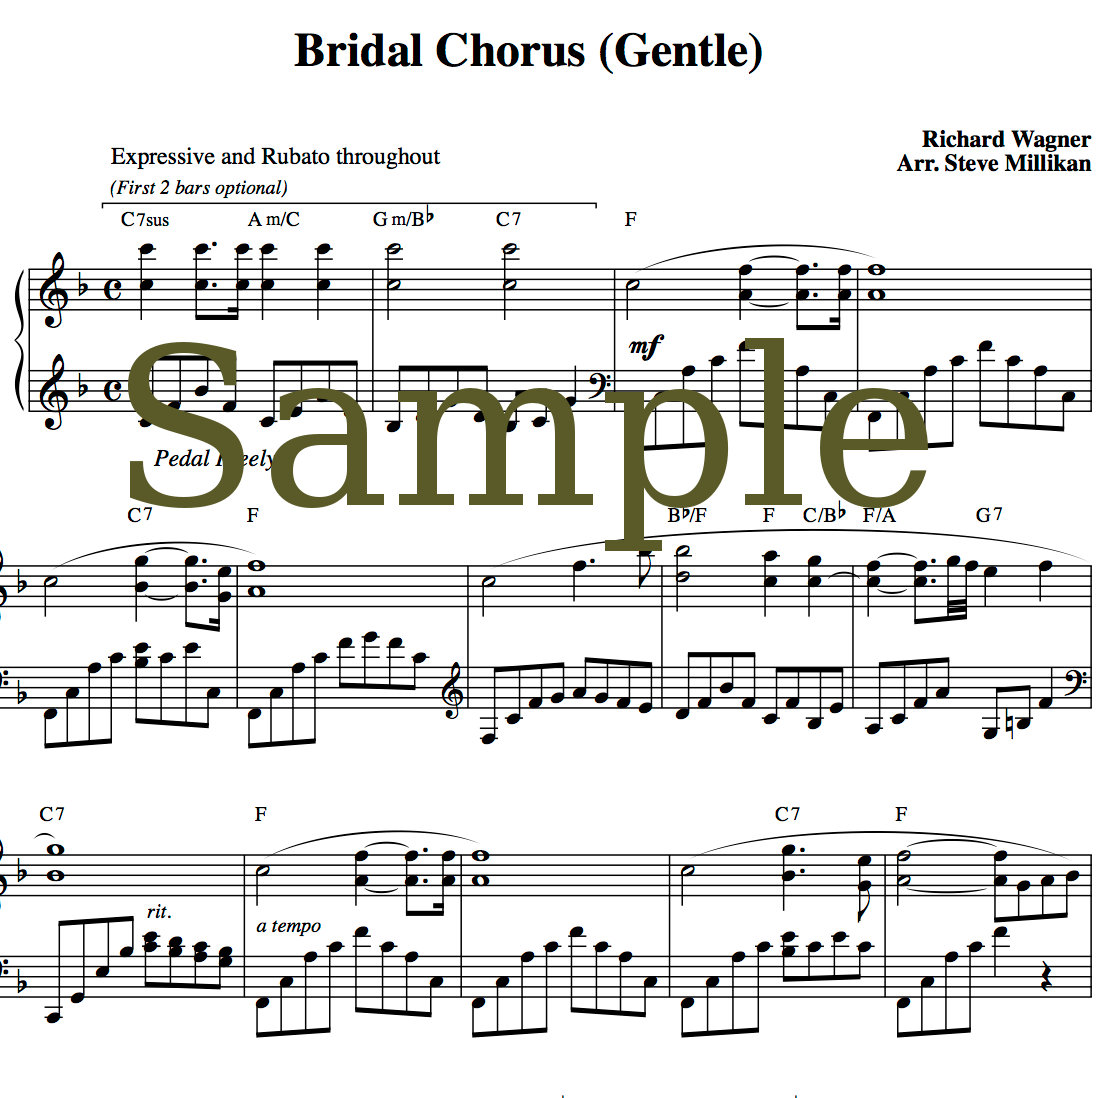 Magnificent By Wedding Music Project Bridal Chorus Sheet Music Comes Wedding March Wedding Processional Songs Piano Wedding Processional Songs Guitar wedding Wedding Processional Songs